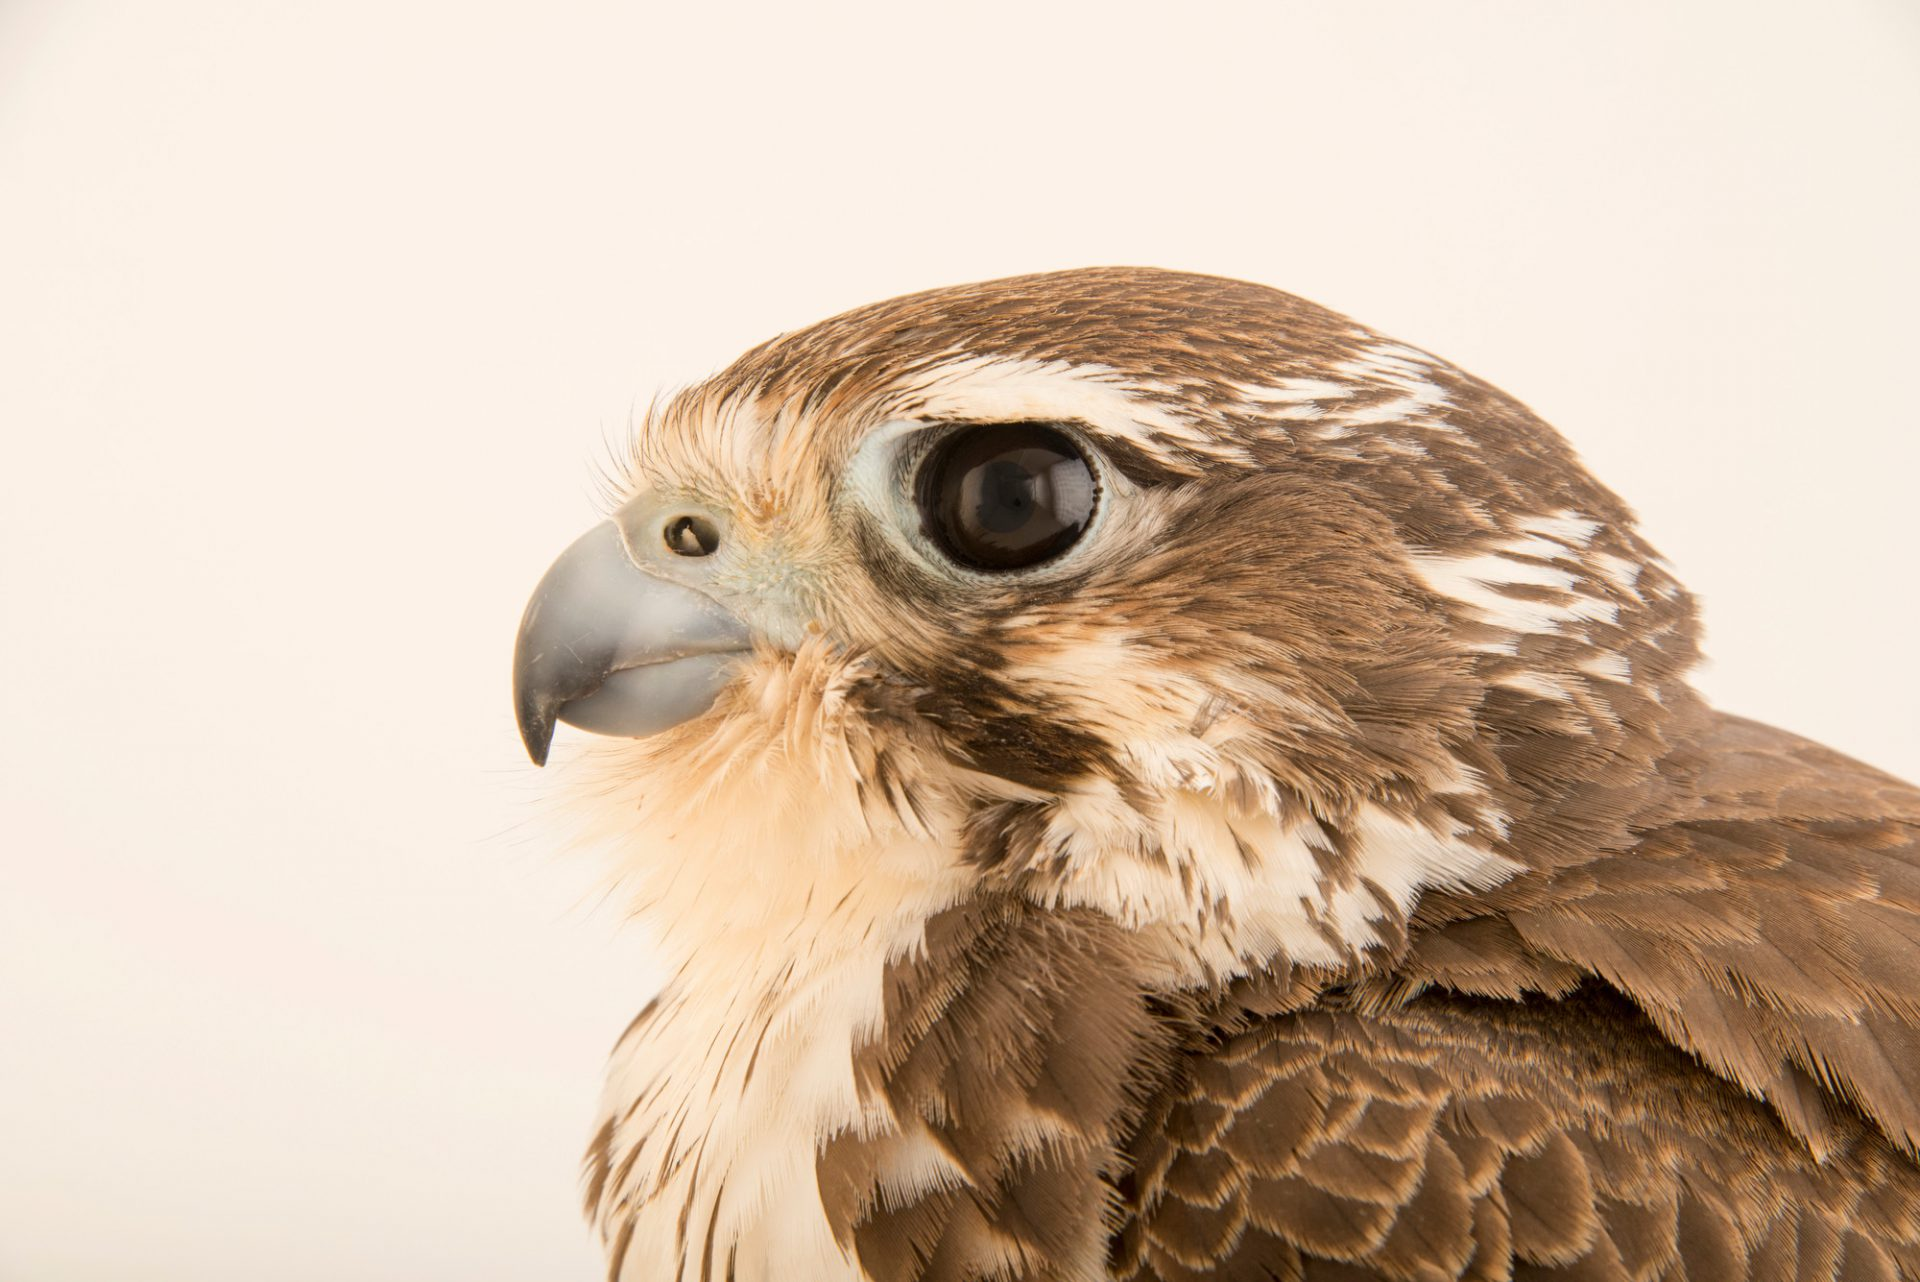 Photo: Prairie falcon (Falco mexicanus) at the Hutchinson Zoo.